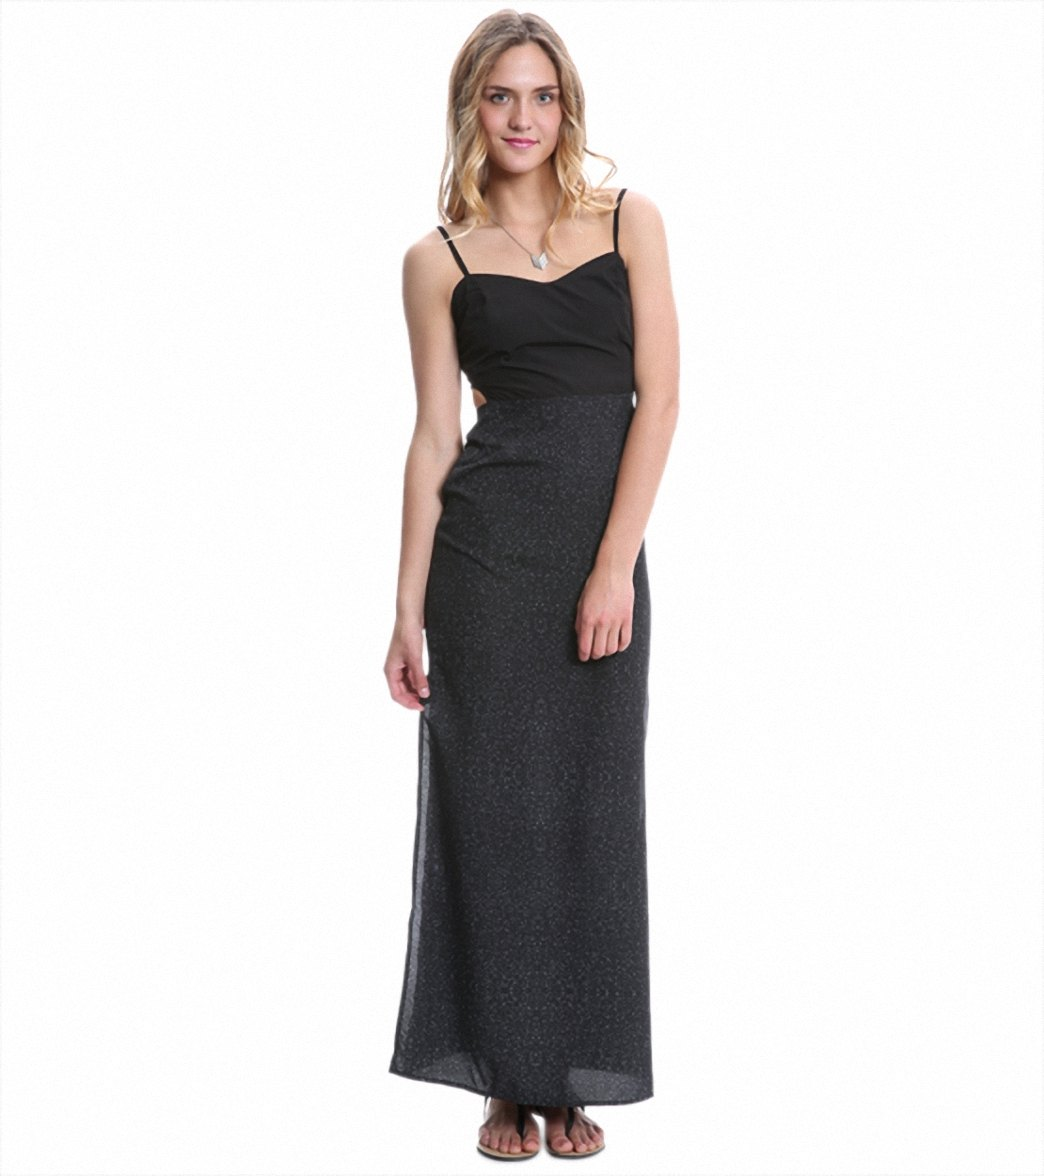 74c5215c12e Hurley Women s Paige Cut Out Maxi Dress at SwimOutlet.com - Free Shipping